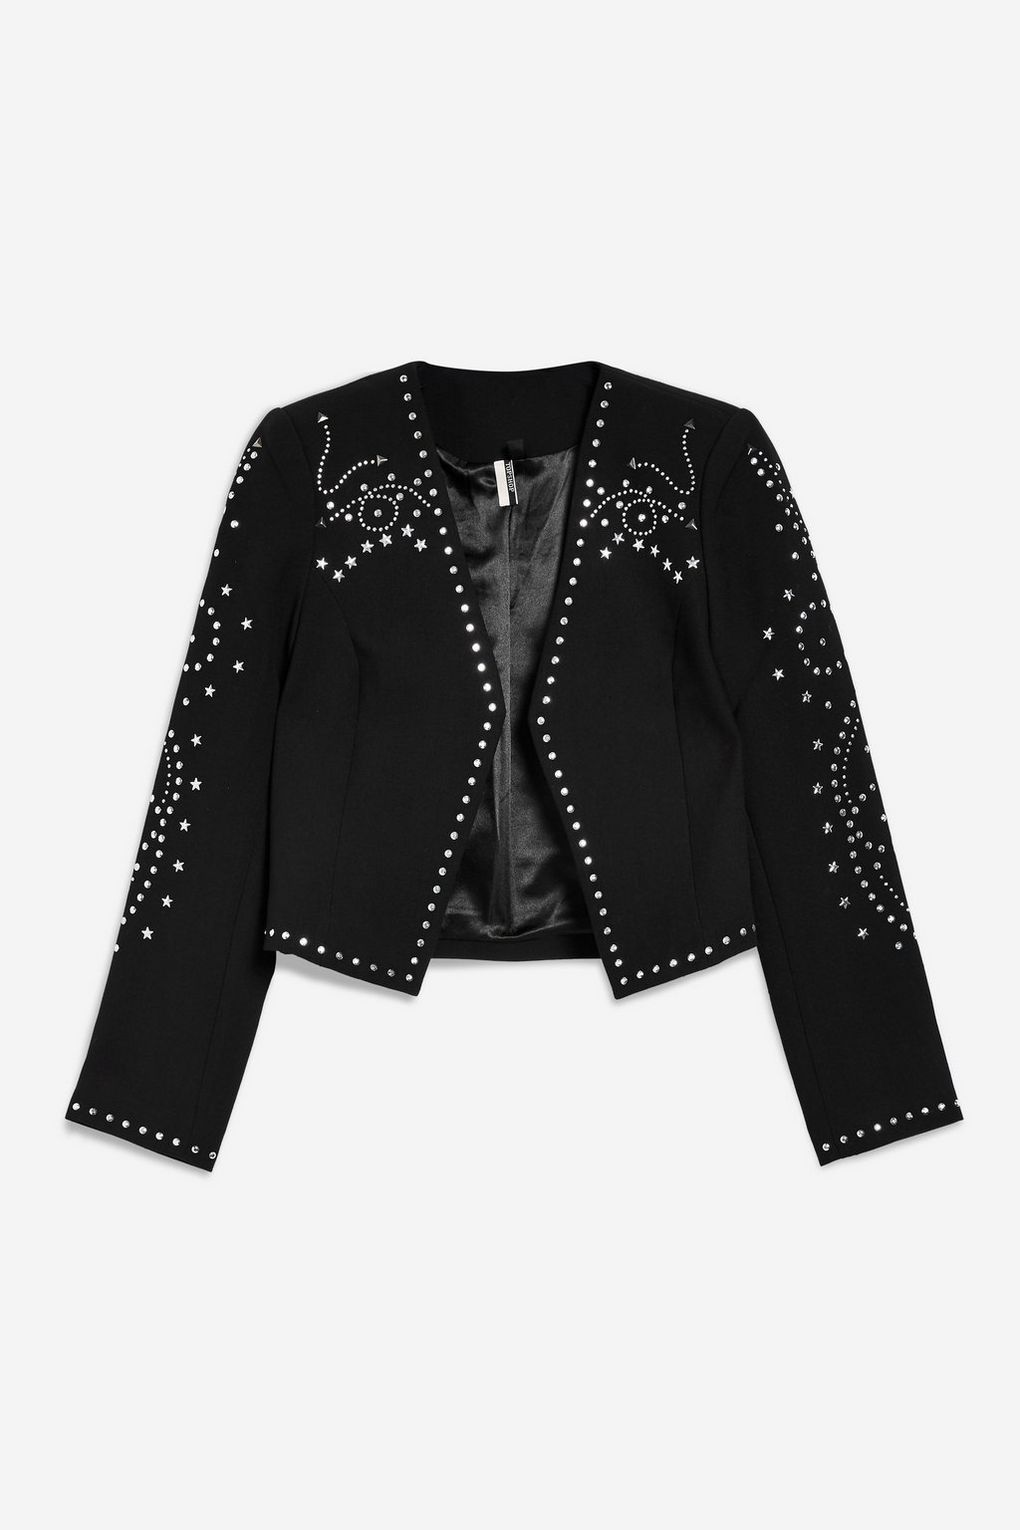 Cropped Studded Jacket - New In Fashion - New In - Topshop d55850408e